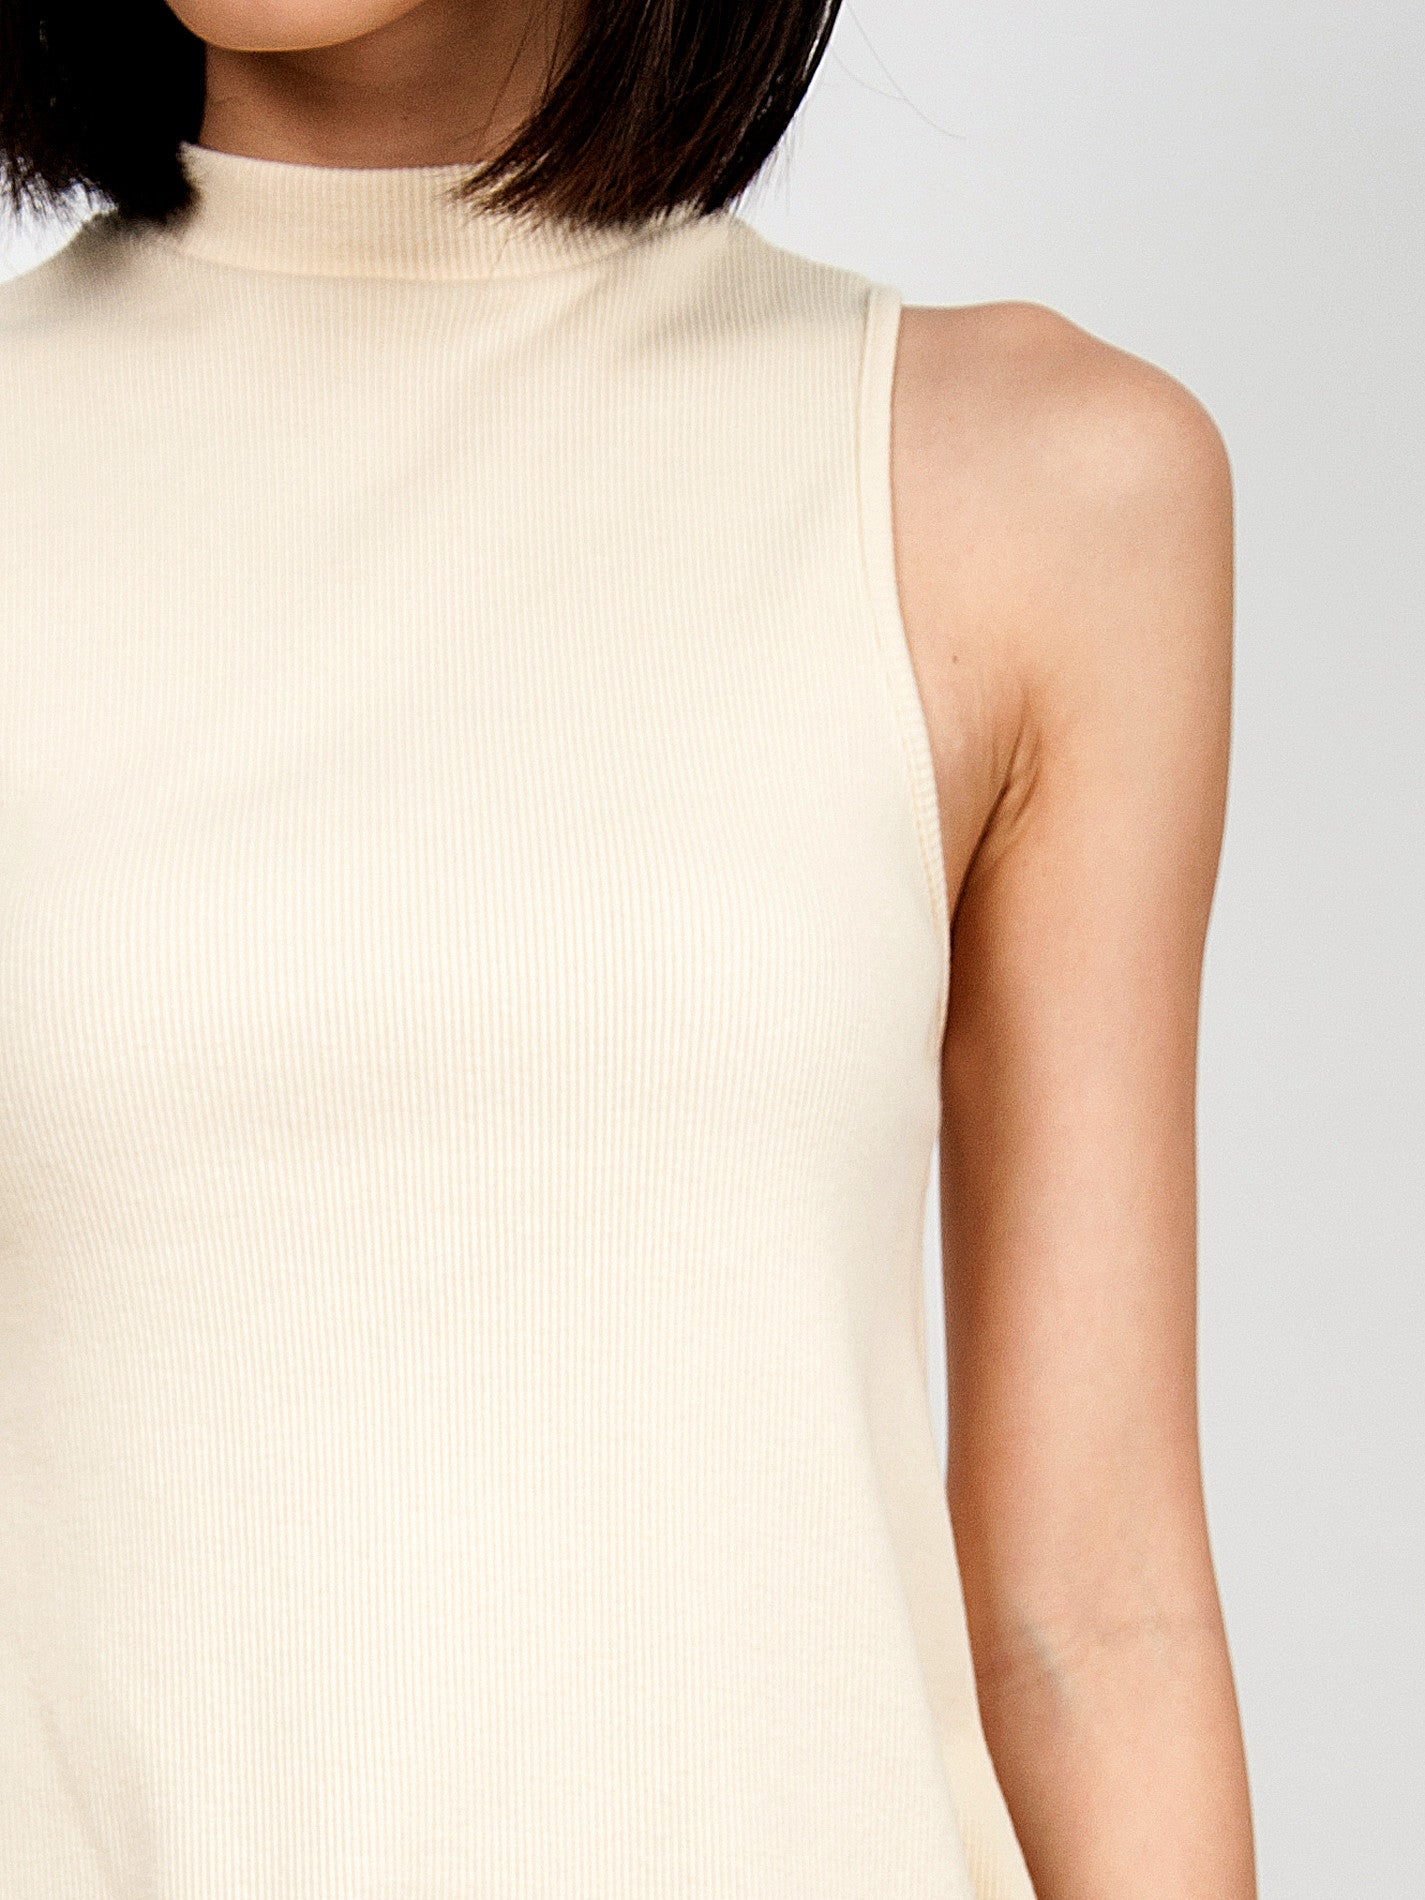 CLARE Ribbed High Neck Dress (Cream)